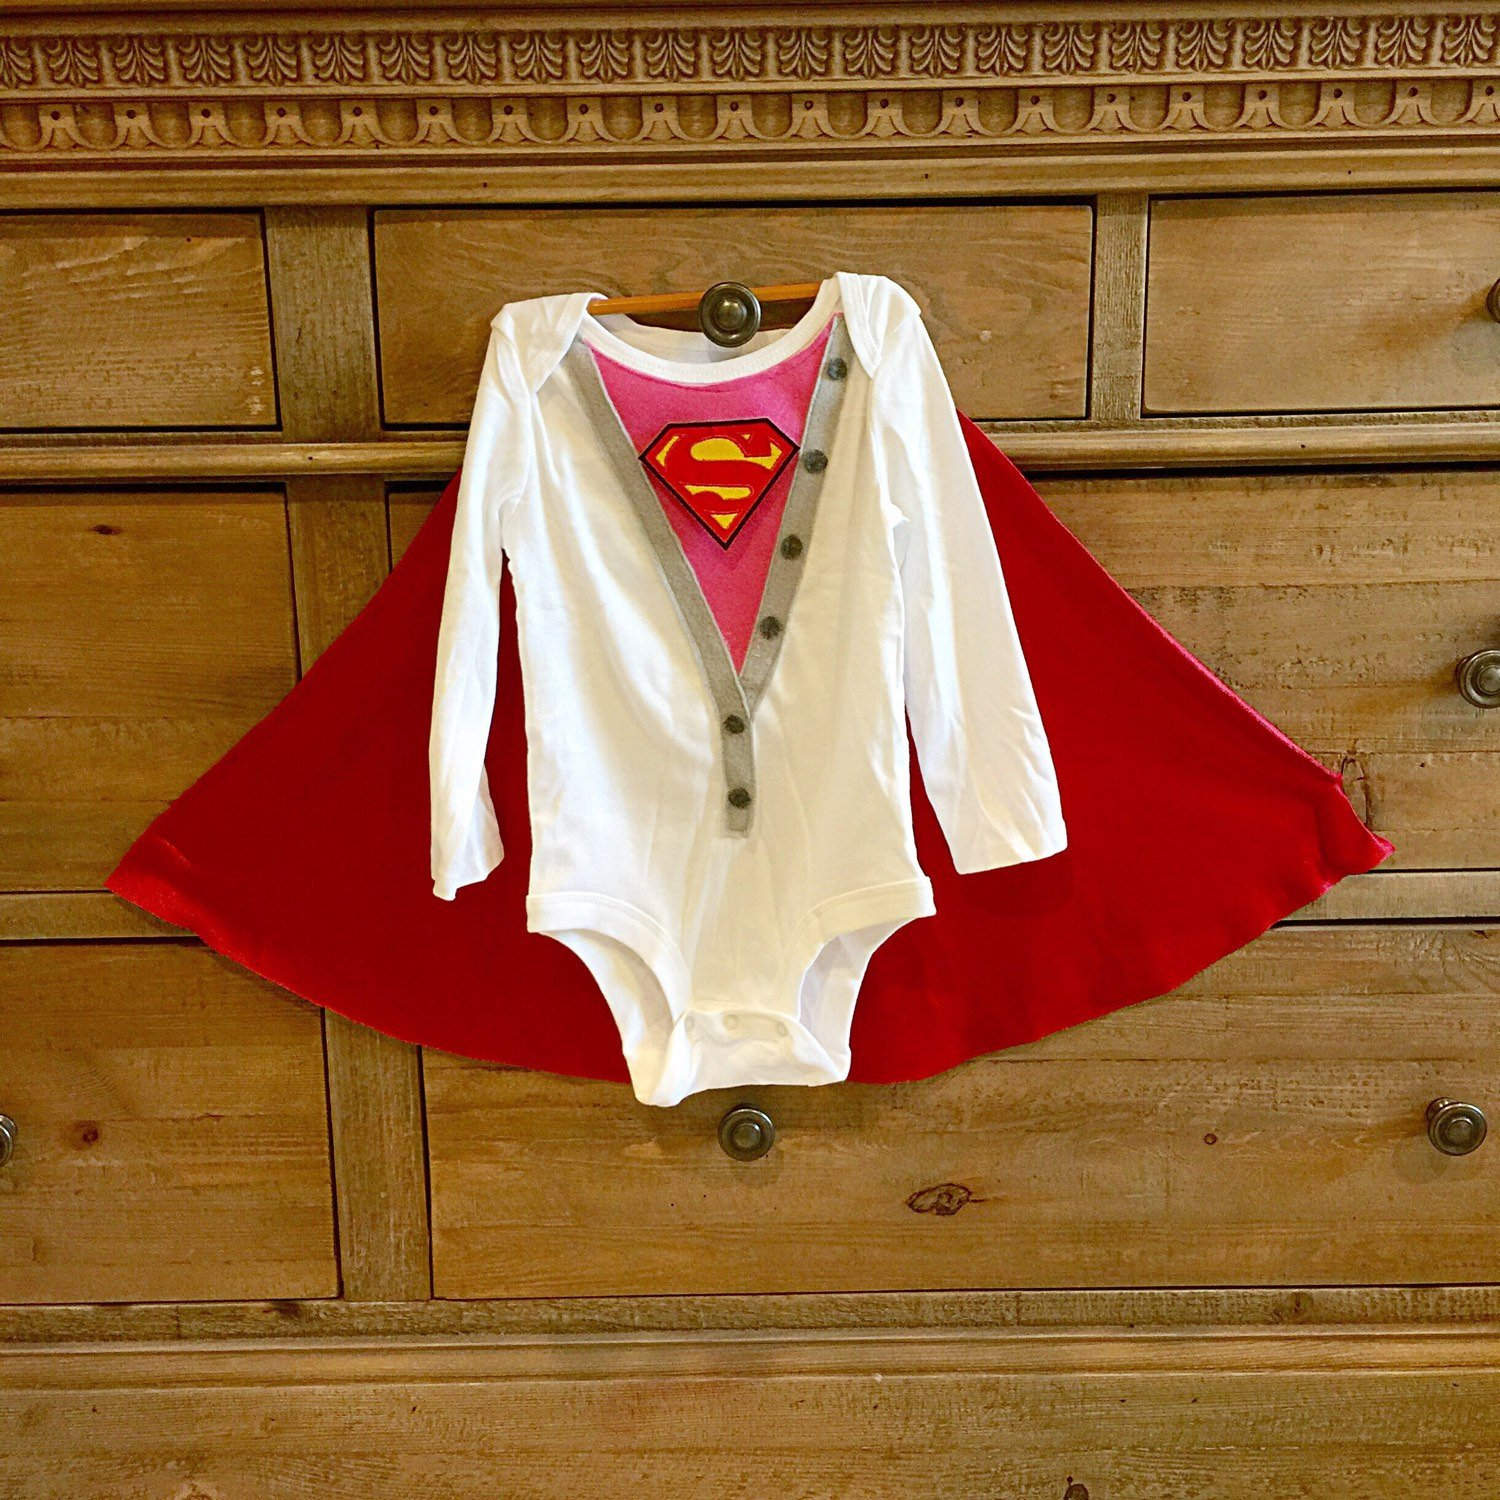 Handmade Baby Girl Super Hero One Superwoman superbaby Selling Ranking integrated 1st place rankings Supergirl